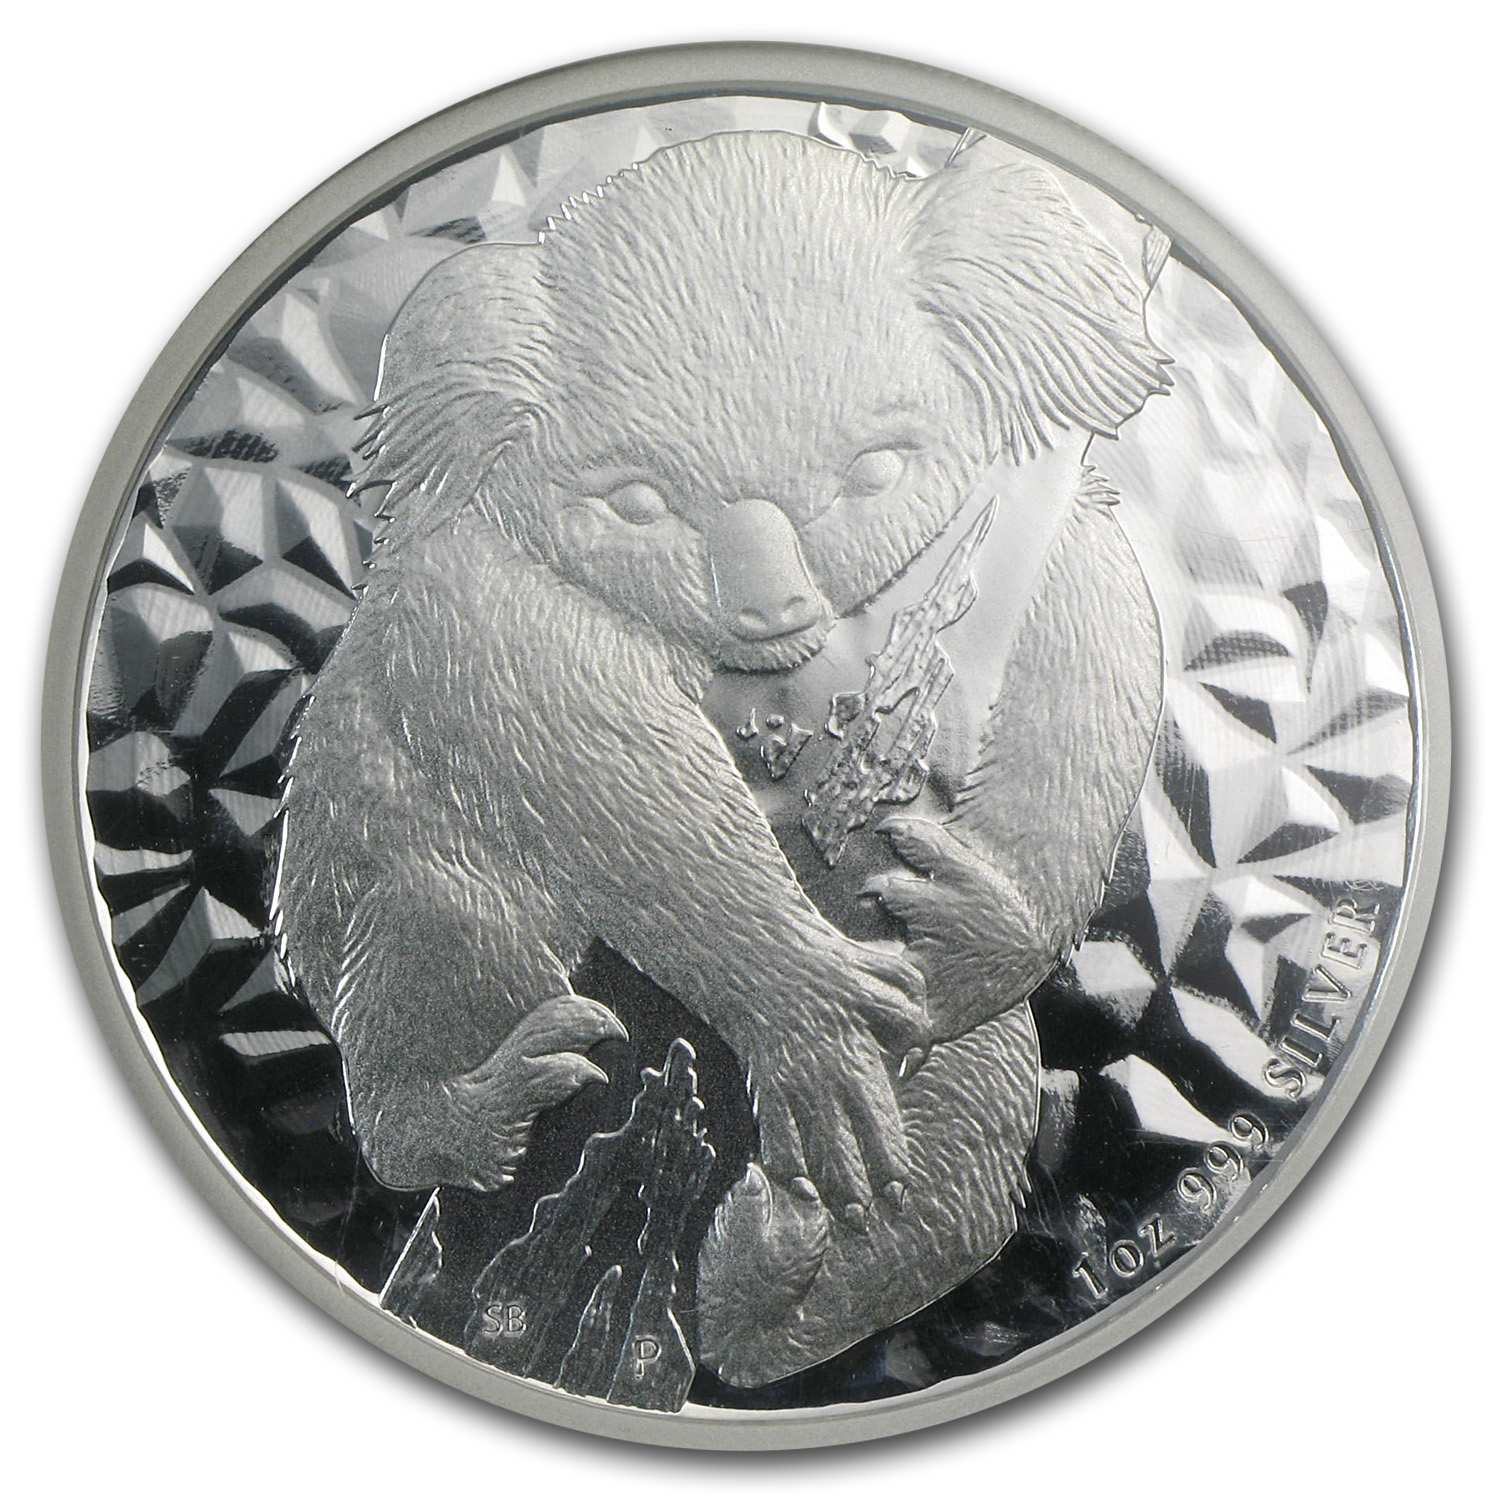 2007 Australia 1 oz Silver Koala MS-69 NGC (1 of first 5,000)